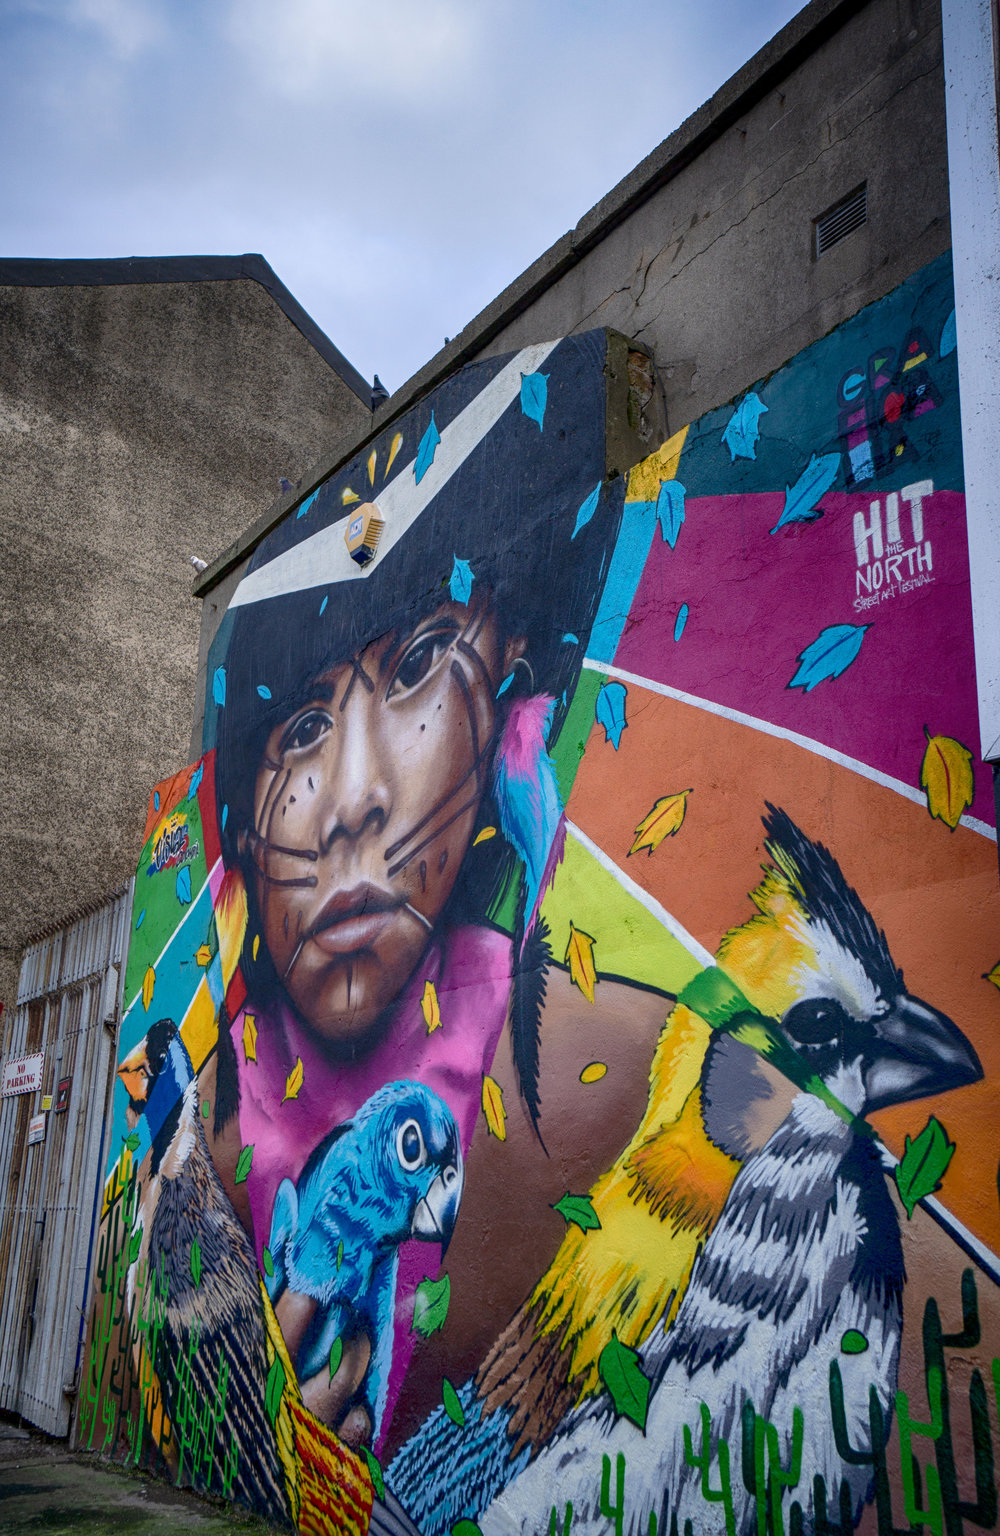 belfast_mural_vickygood_travel_photography6sm.jpg